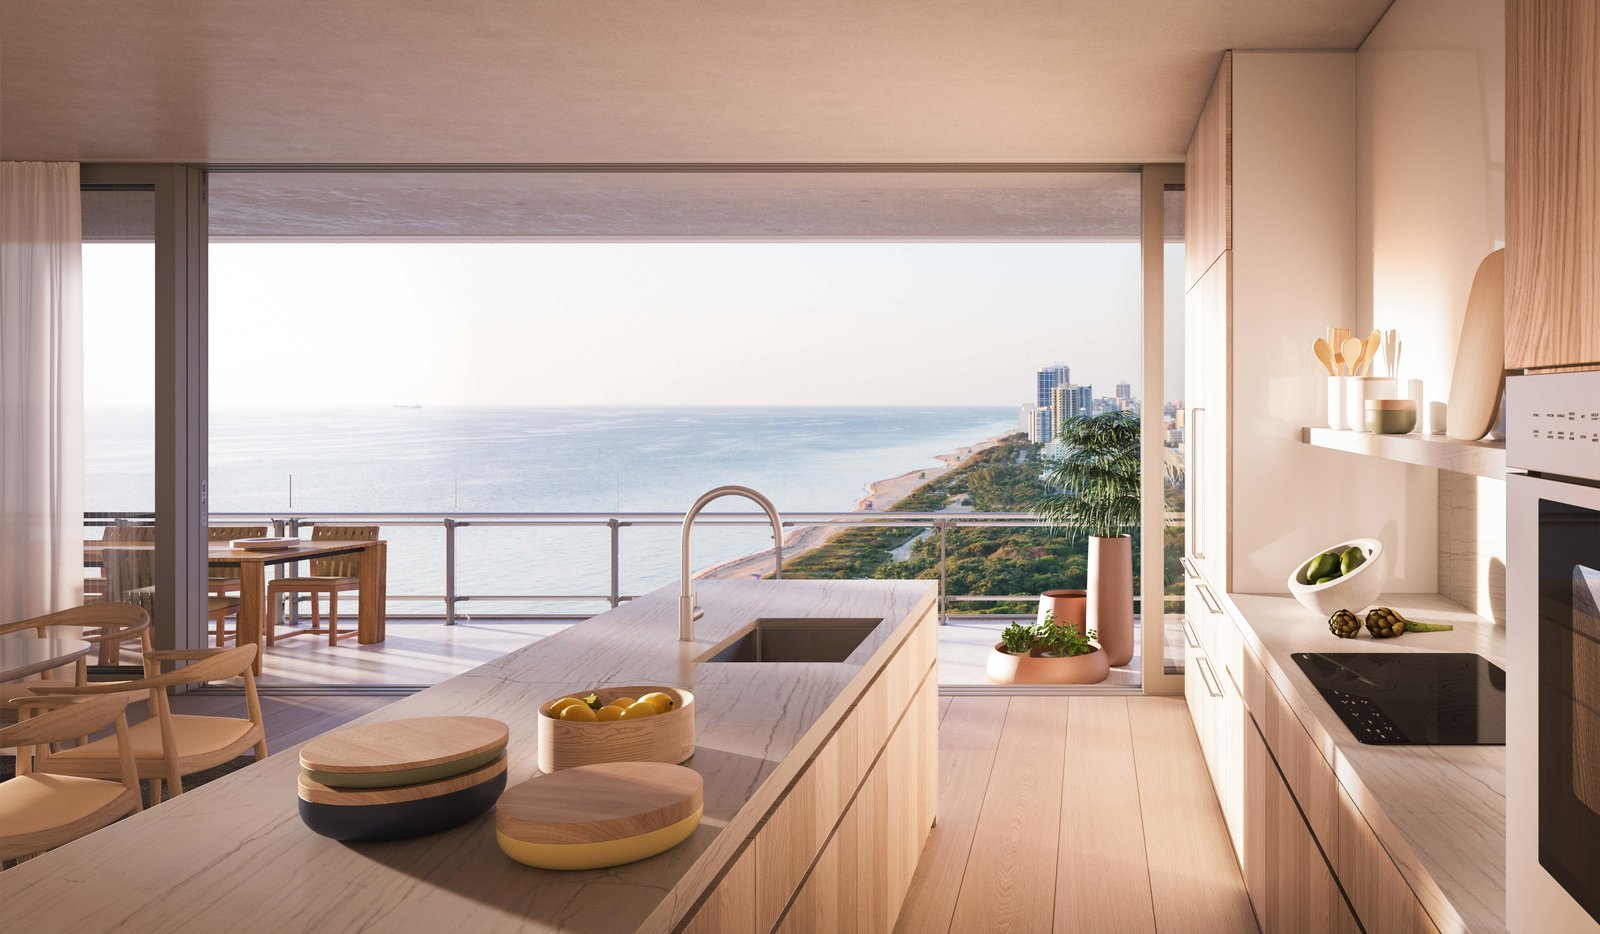 Kitchen Throughout the interior, window frames are sunk into the floor and ceiling, erasing the sense of space between inside and outside.  Photo 5 of 8 in Sneak Peek of Renzo Piano's New Stunning Oceanfront Condominiums in Miami's North Beach